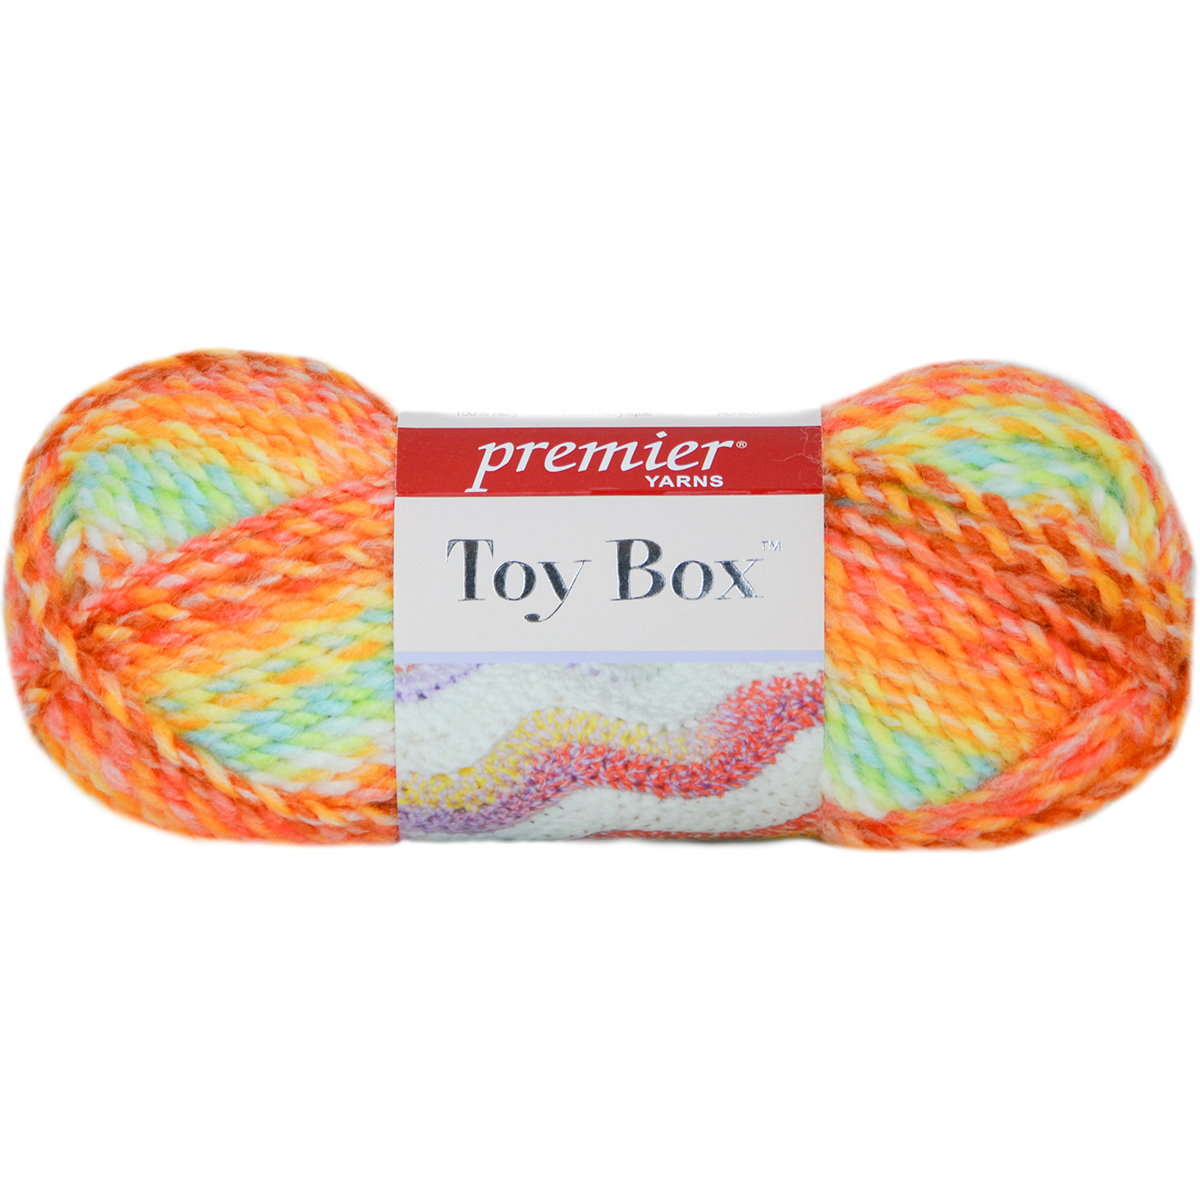 Toy Box Yarn-Lincoln Logs